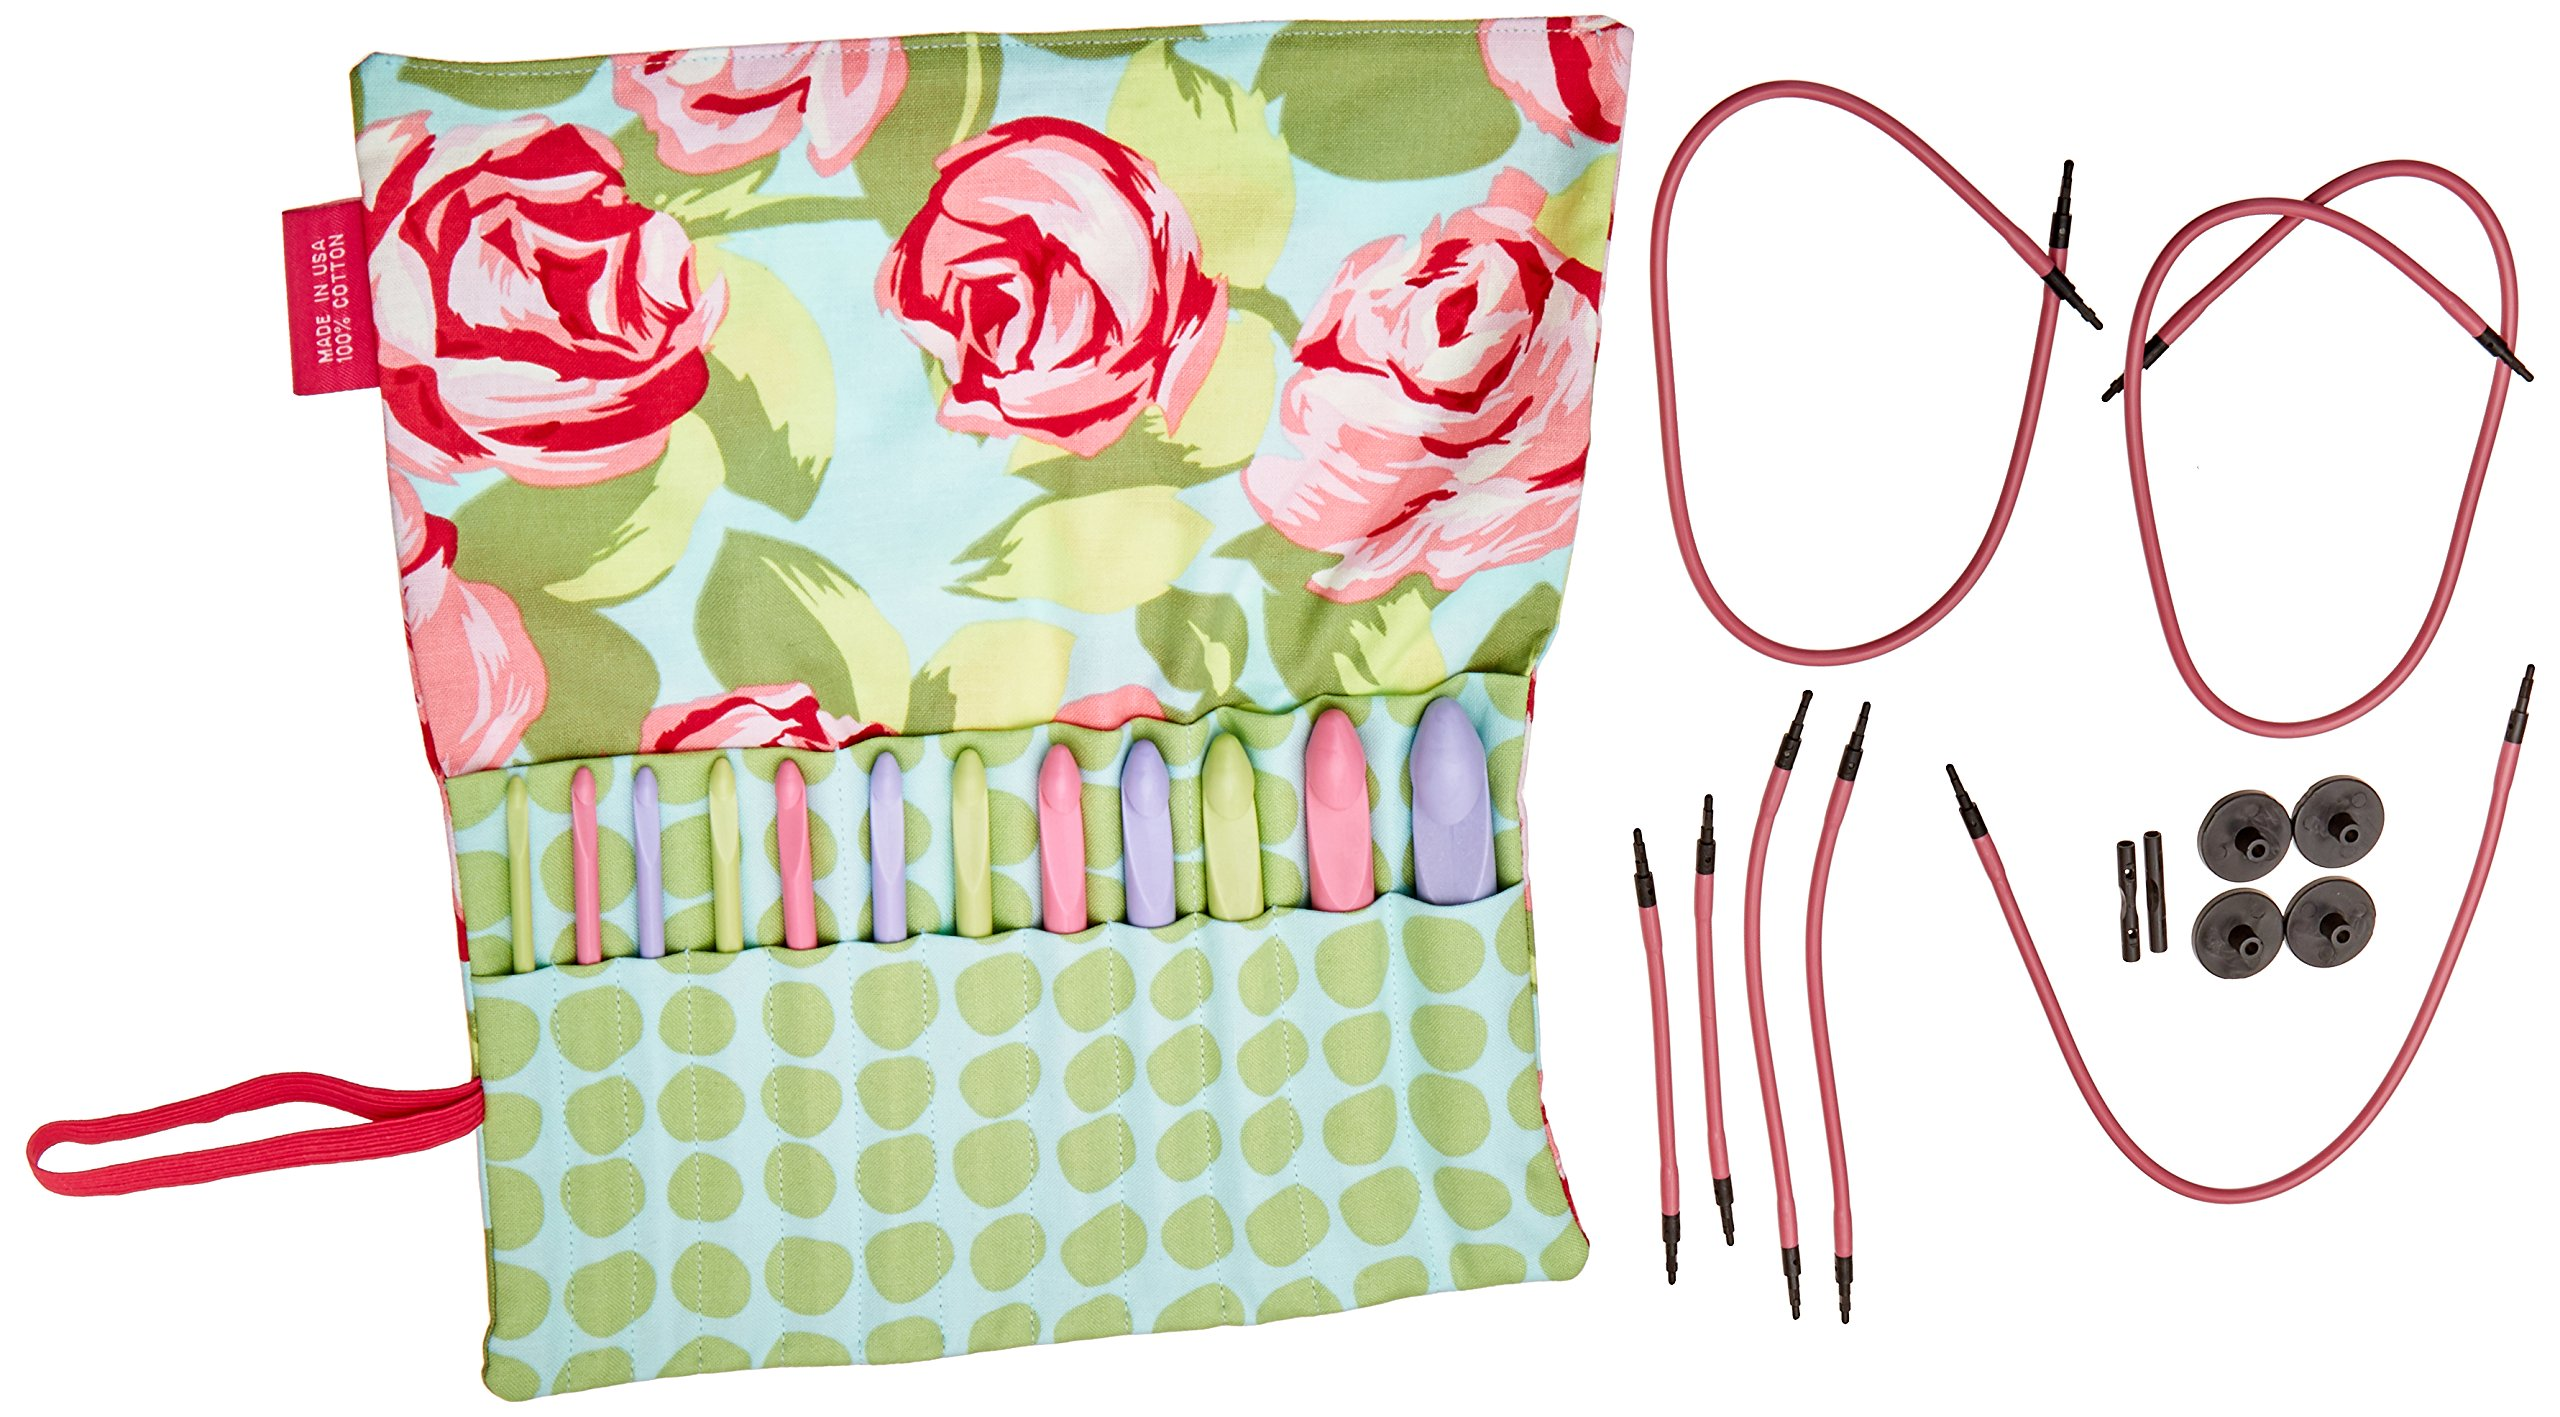 Denise2Go, Crochet for a Cure Interchangeable Crochet Hook Set ''Roses and Dots'' by Denise Needles (Image #1)